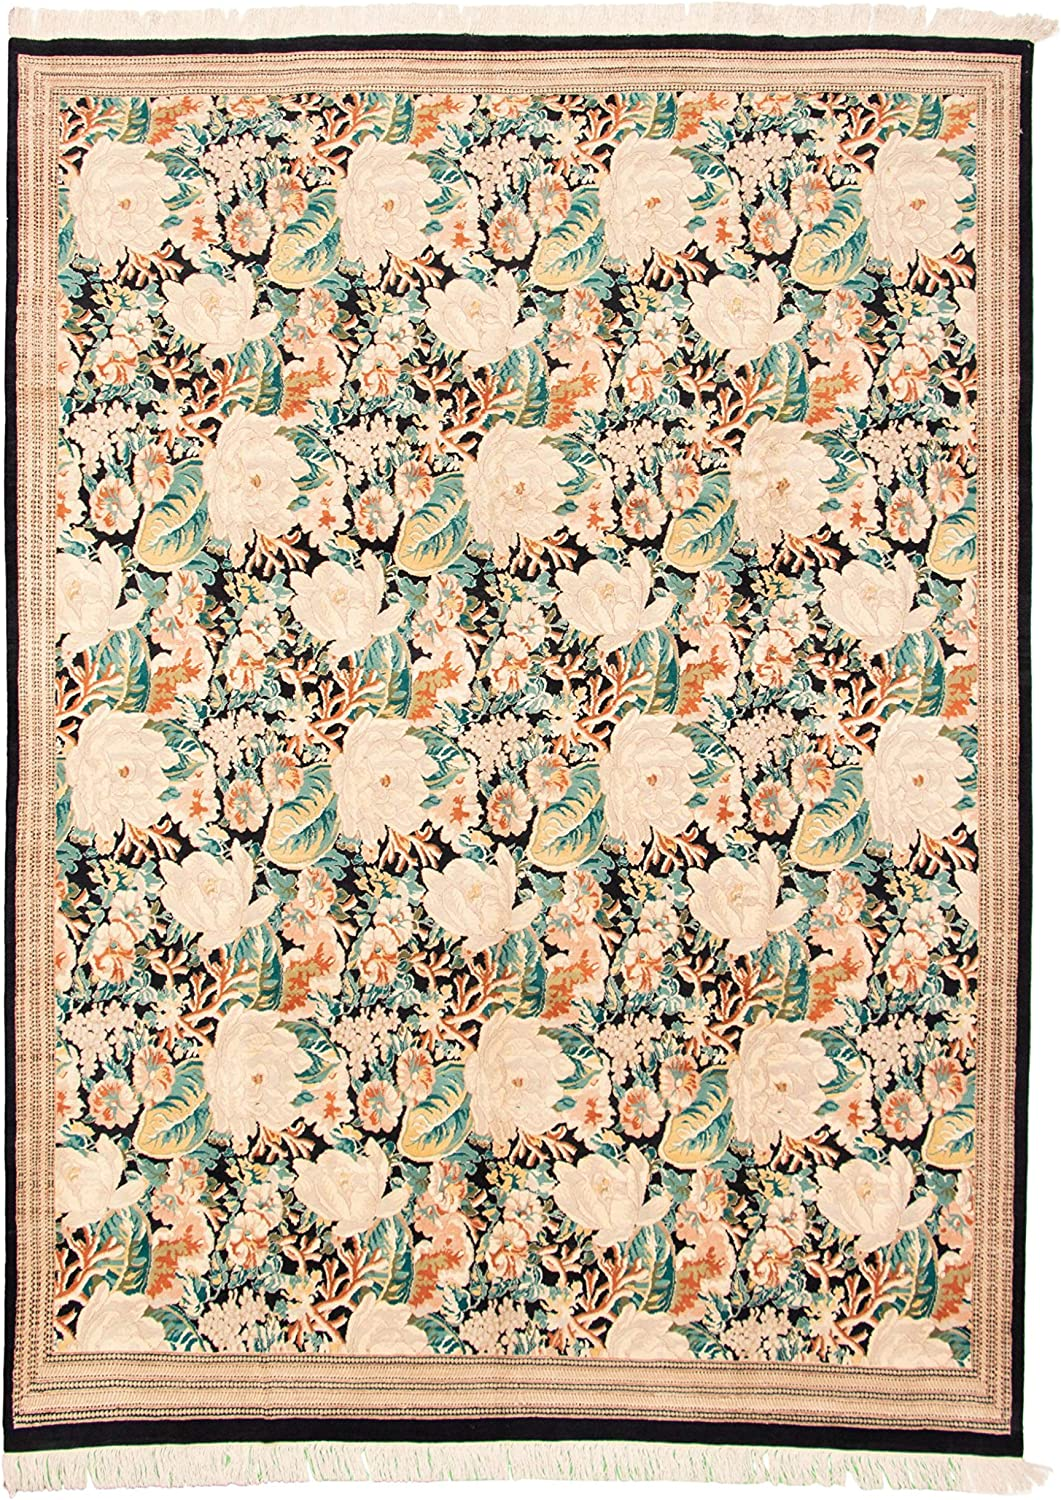 Max 54% OFF eCarpet Gallery Large Area Rug Room Bedroom for Hand-K Living excellence